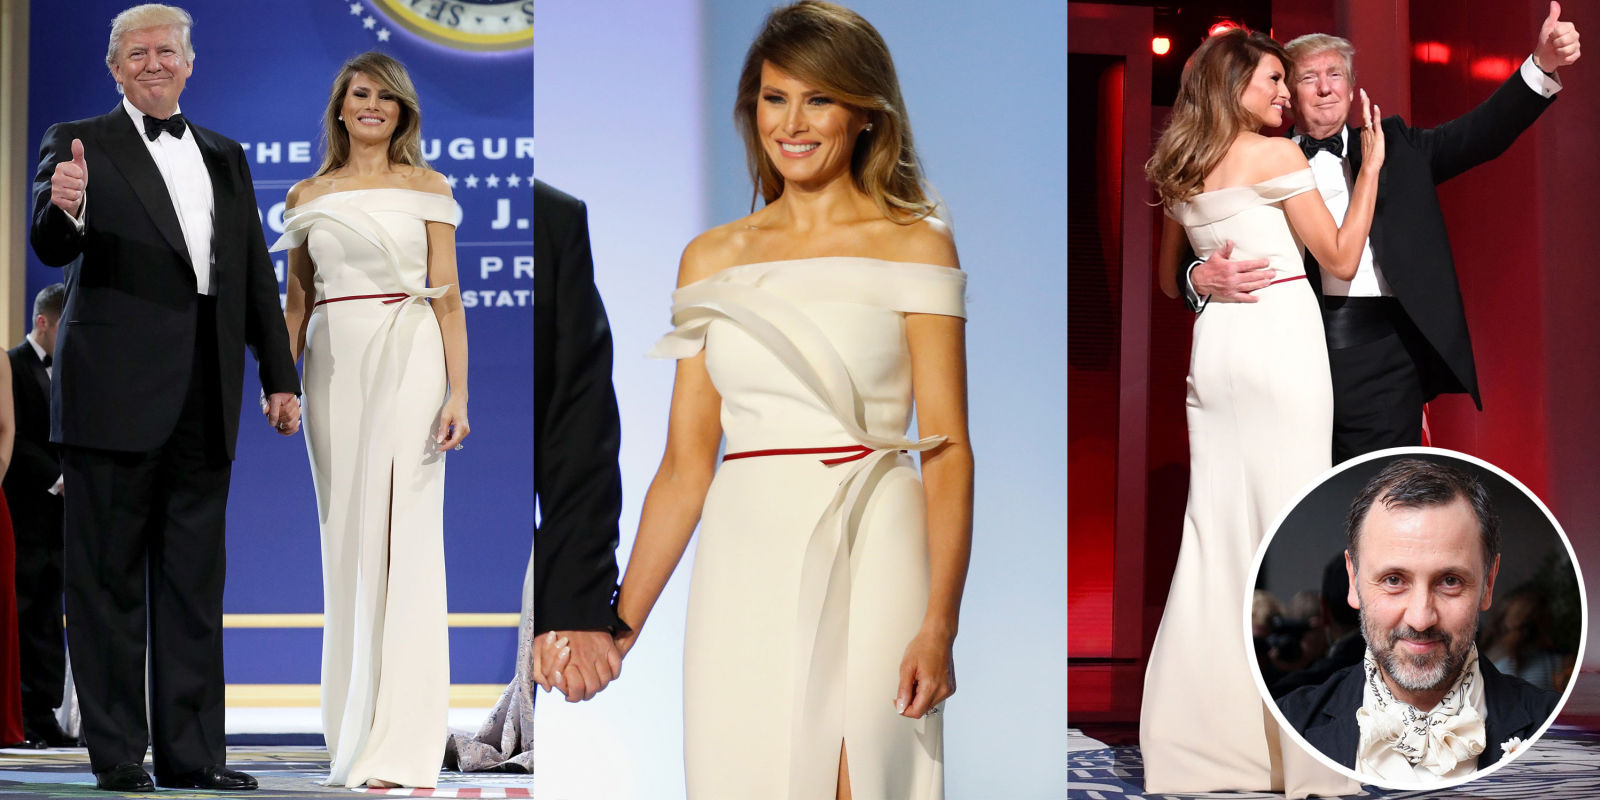 melania trump inauguration gown designer herve pierre speaks out melania trump inauguration gown designer herve pierre speaks out herve pierre interview